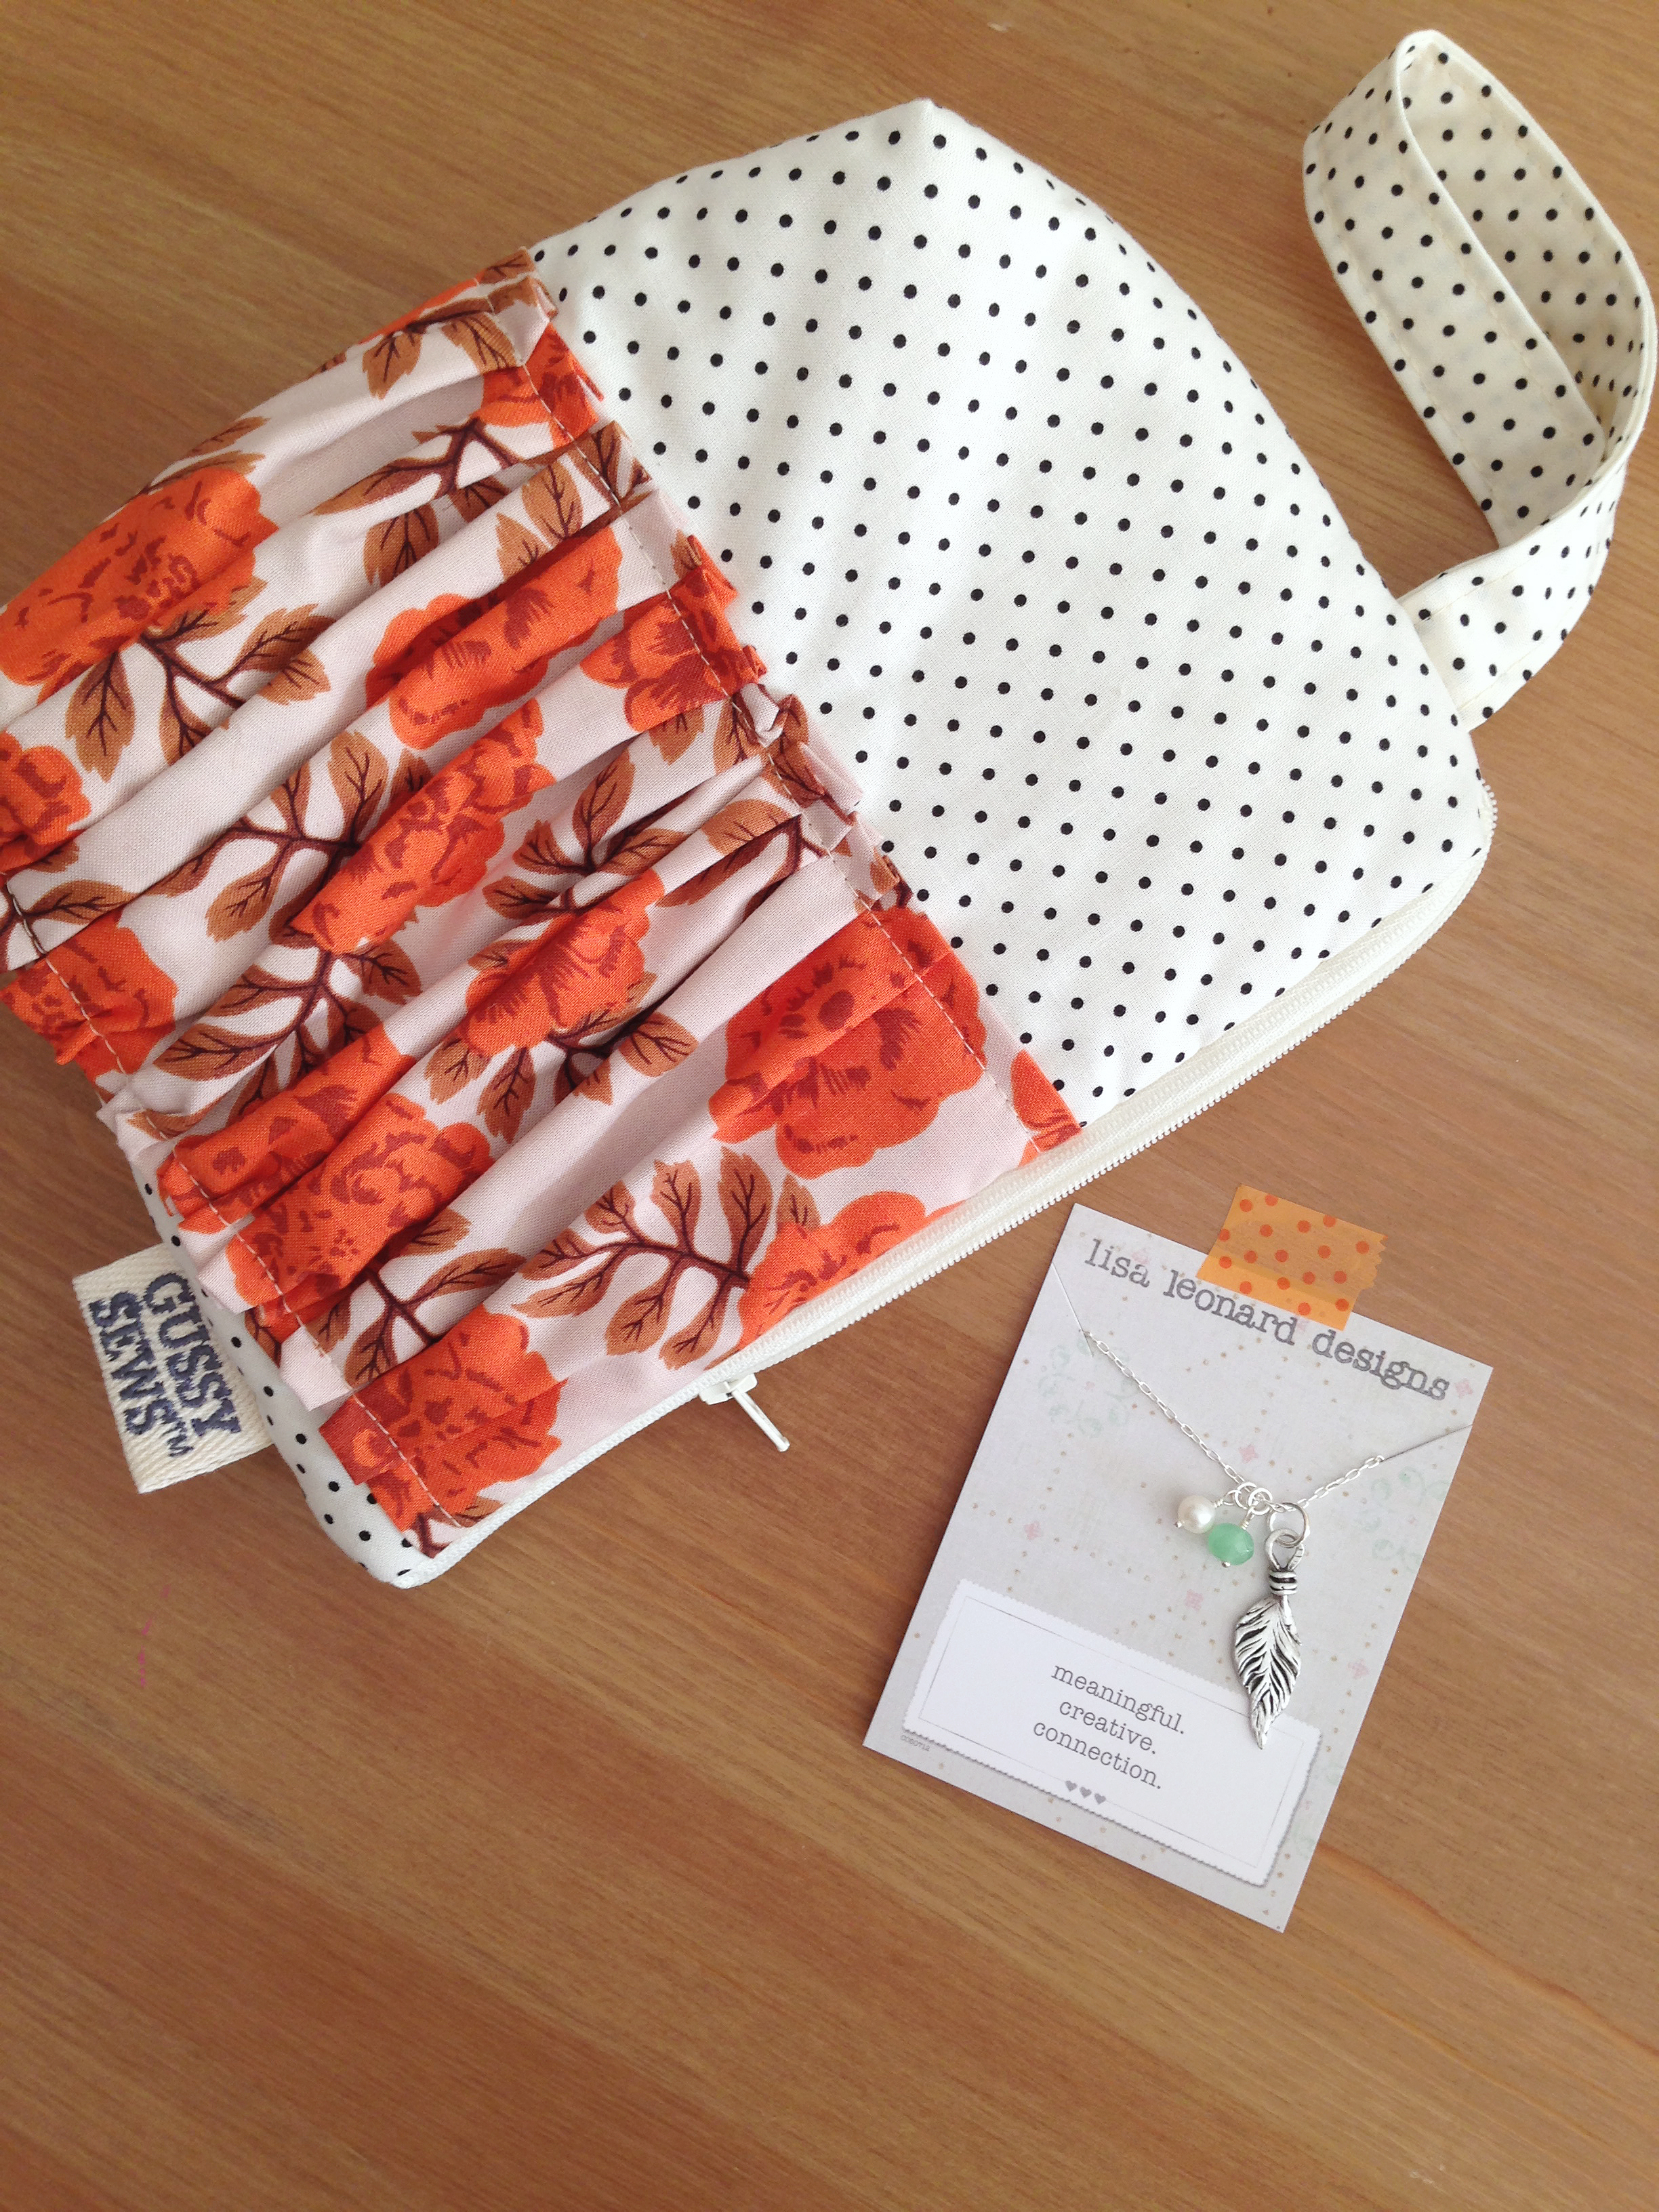 It's a Gussy Sews and Lisa Leonard giveaway!